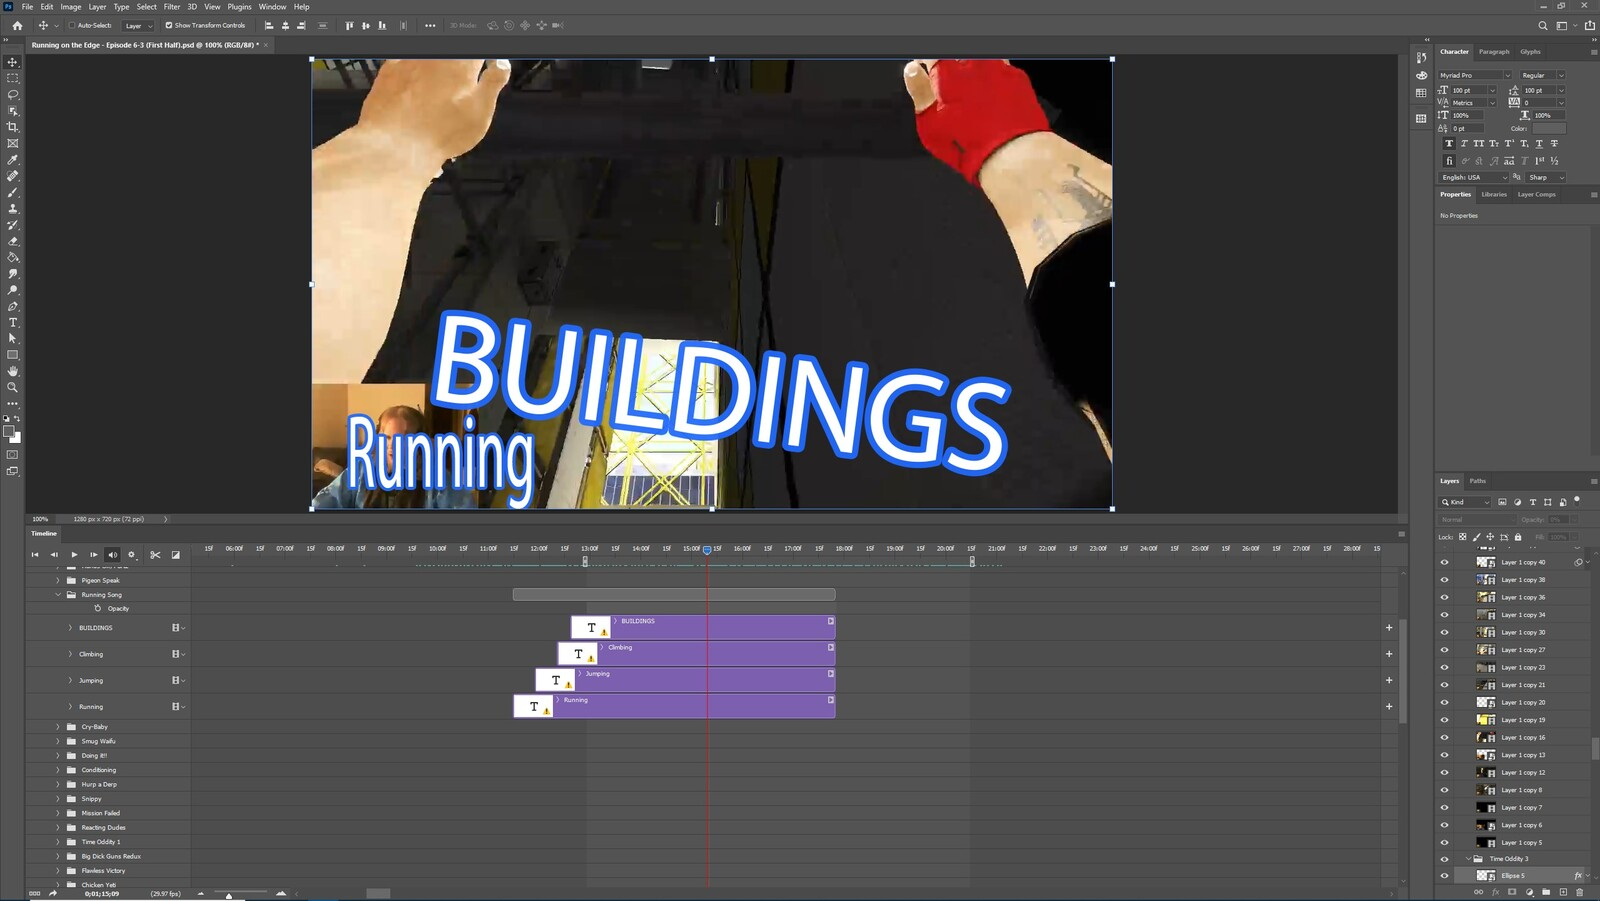 """The """"Running Song"""" visual effect within Photoshop video editor"""